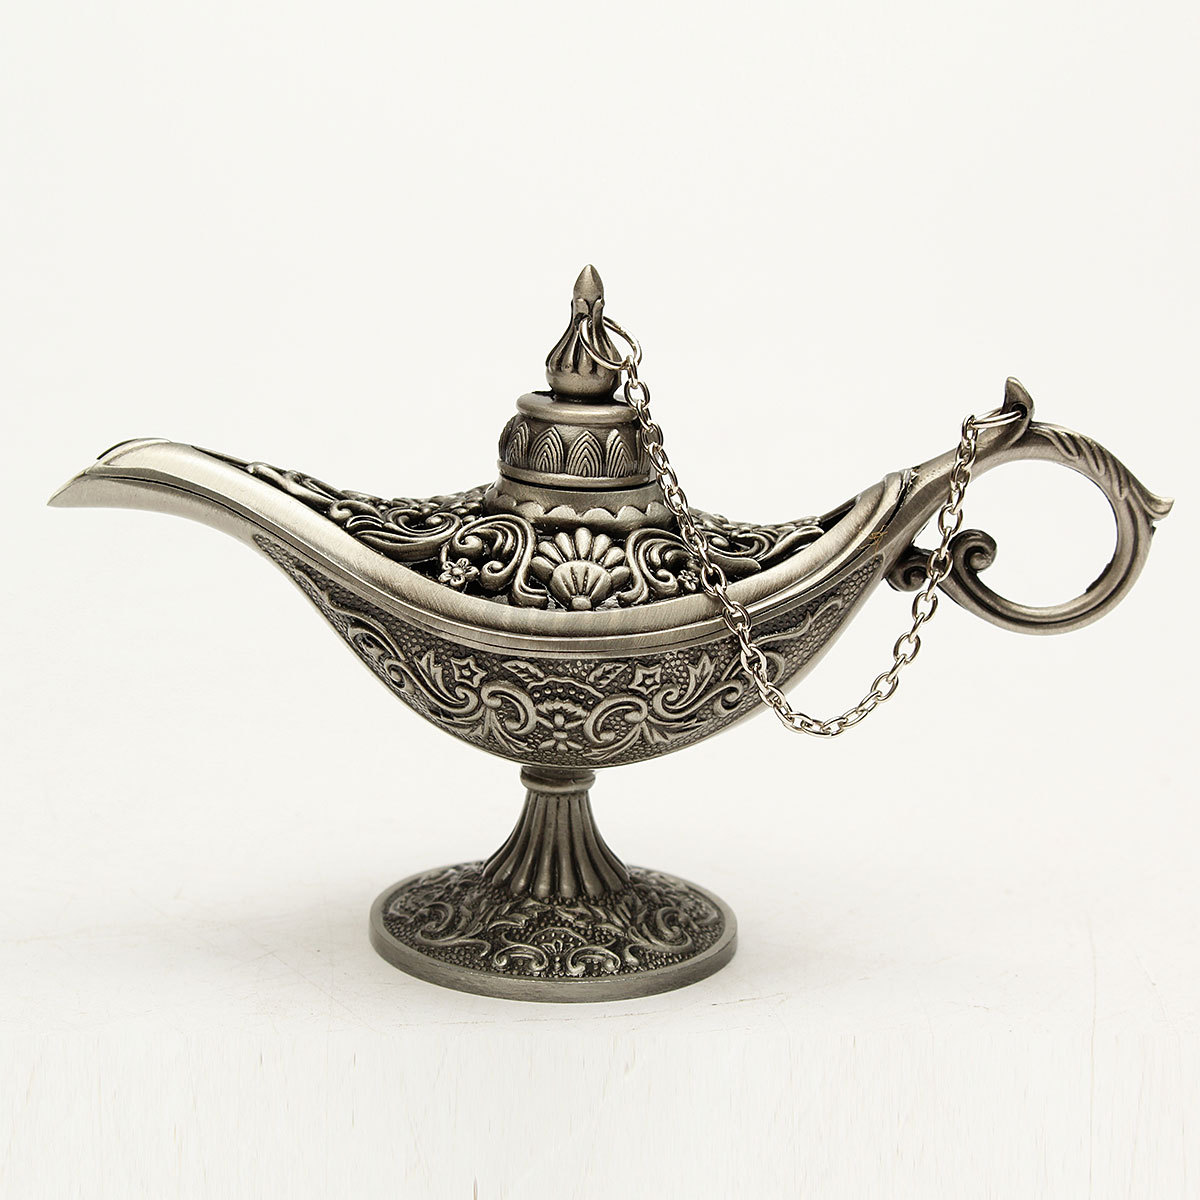 Aladdin Magic Genie Lamp Tea Pot Genie Lamp Vintage Retro Toys Gifts Home Decor